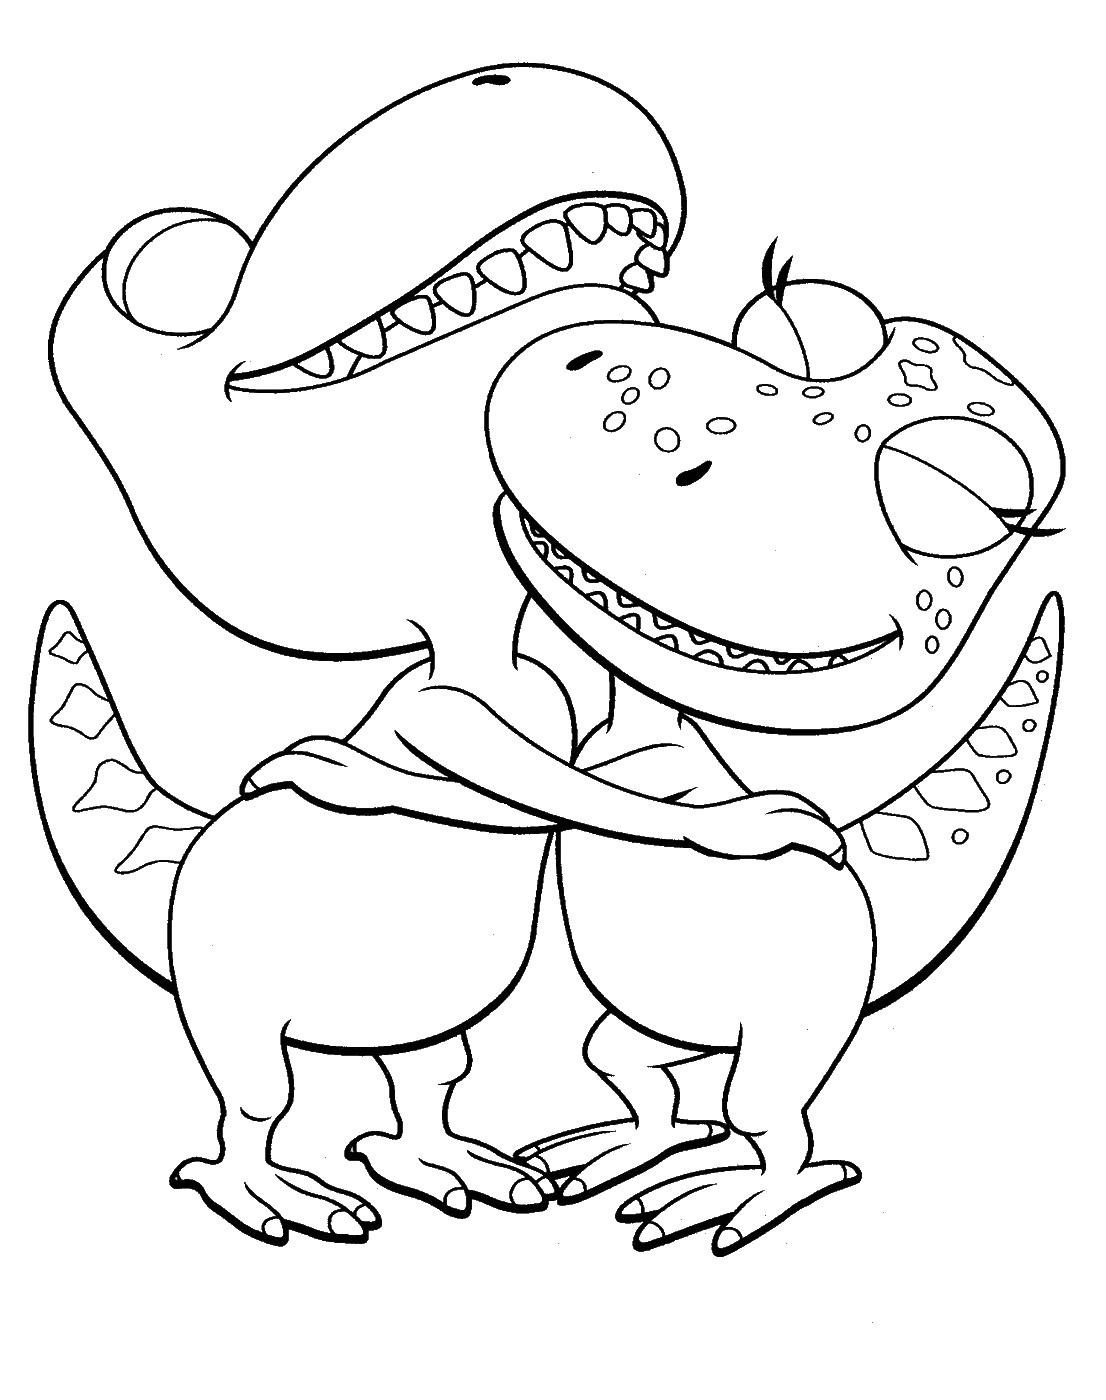 3 Reasons Why Kids Love Dinosaur Train Coloring Pages